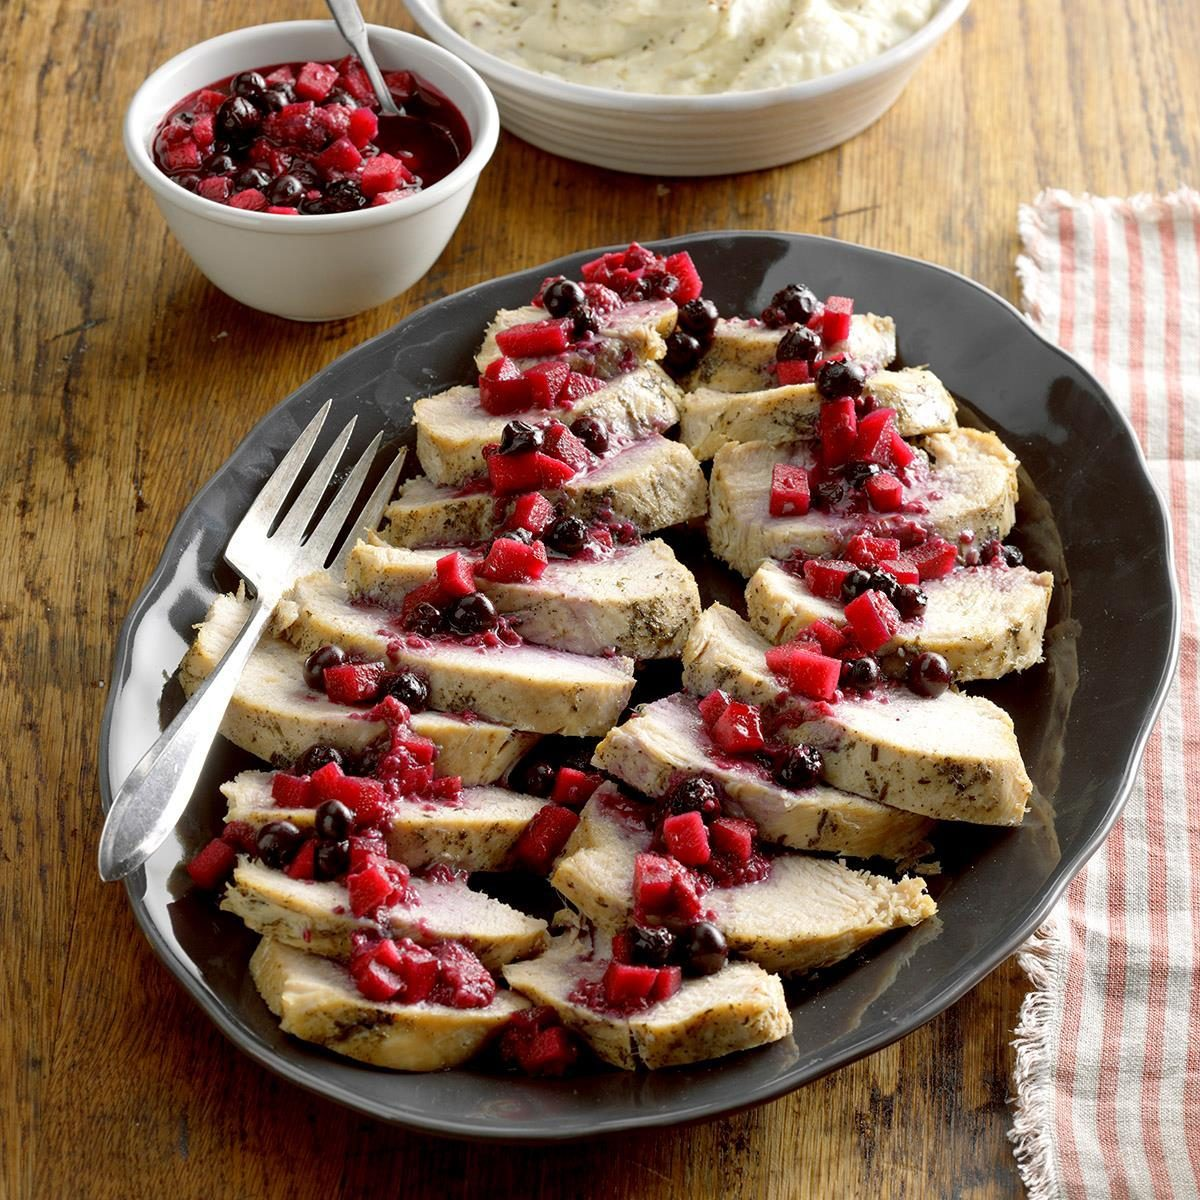 October 14: Pressure-Cooker Turkey with Berry Compote